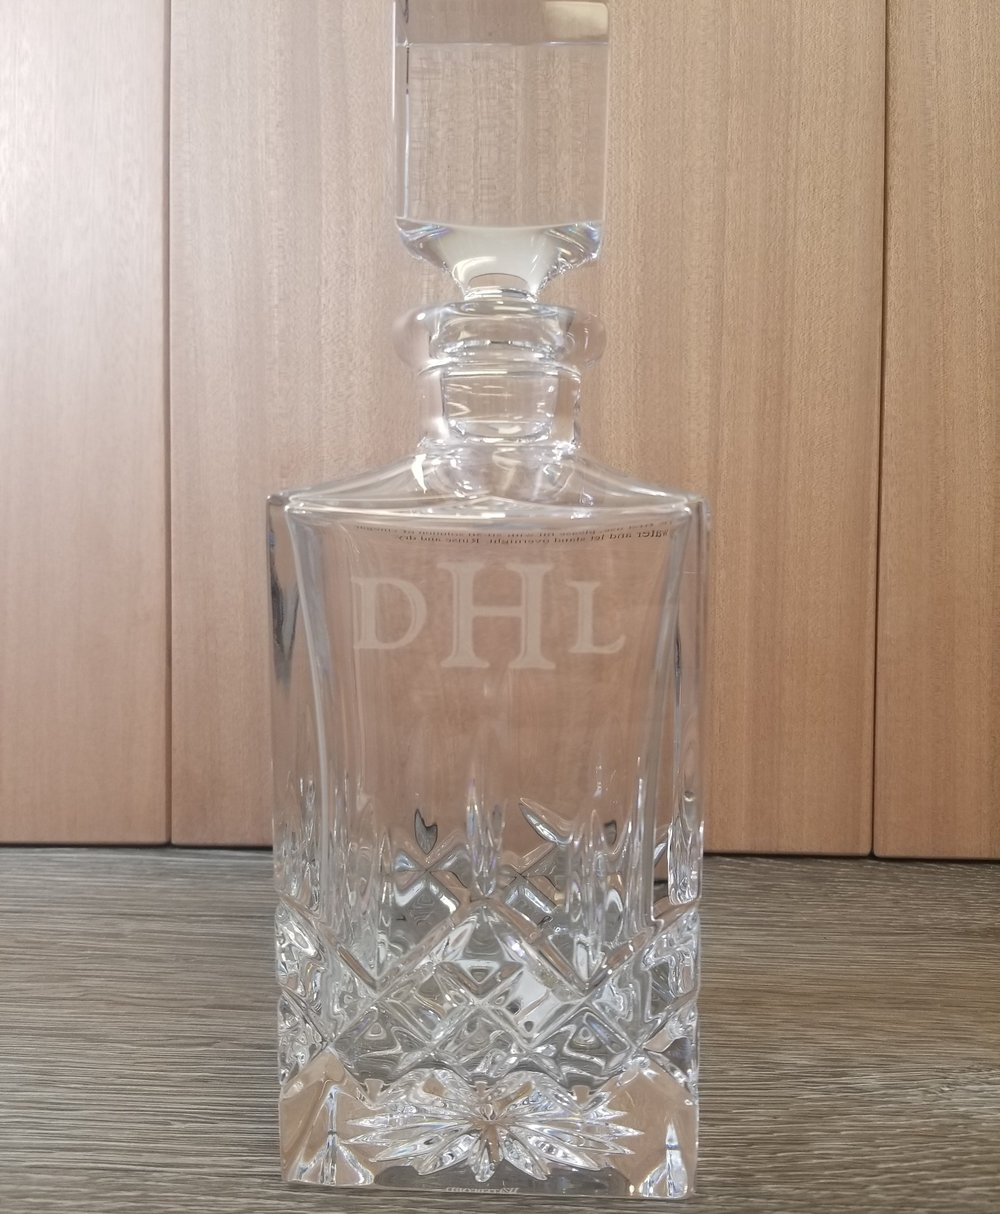 Copy of Engraved Decanter - Personalized Decanter - Engraved Bottle - Personalized Bottle - Engraved Liquor Bottle - Engraved Crystal - Custom Projects - Engrave It Houston